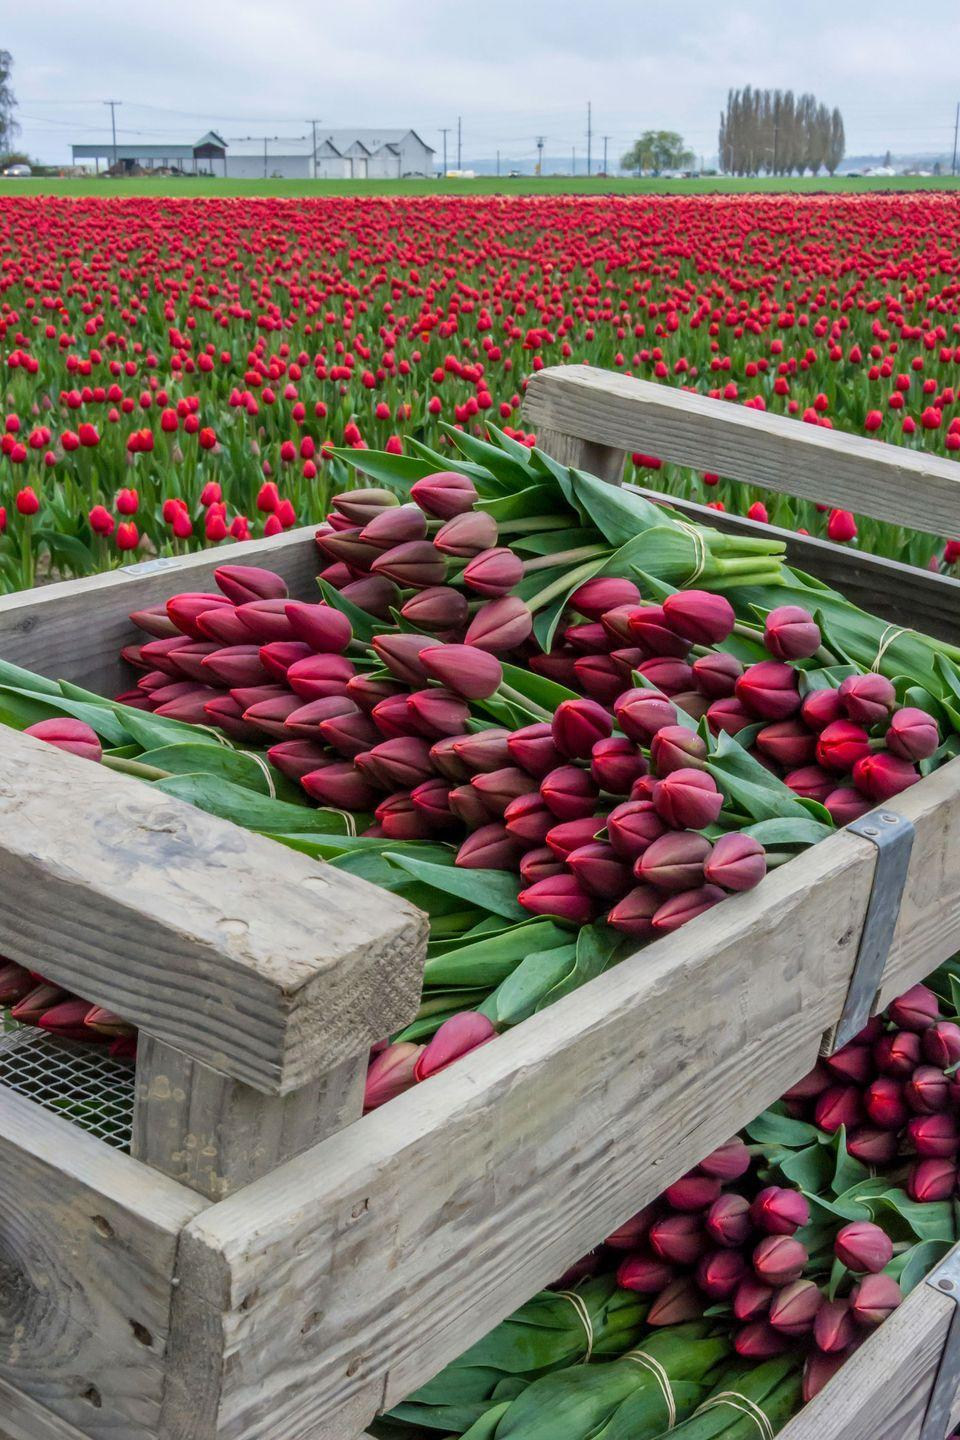 <p><strong>Where: </strong>Skagit Valley, Washington</p><p><strong>Why We Love It: </strong>You don't need to fly all the way to Holland to see some of the world's prettiest tulip fields, which are located just 60 miles north of Seattle.</p>